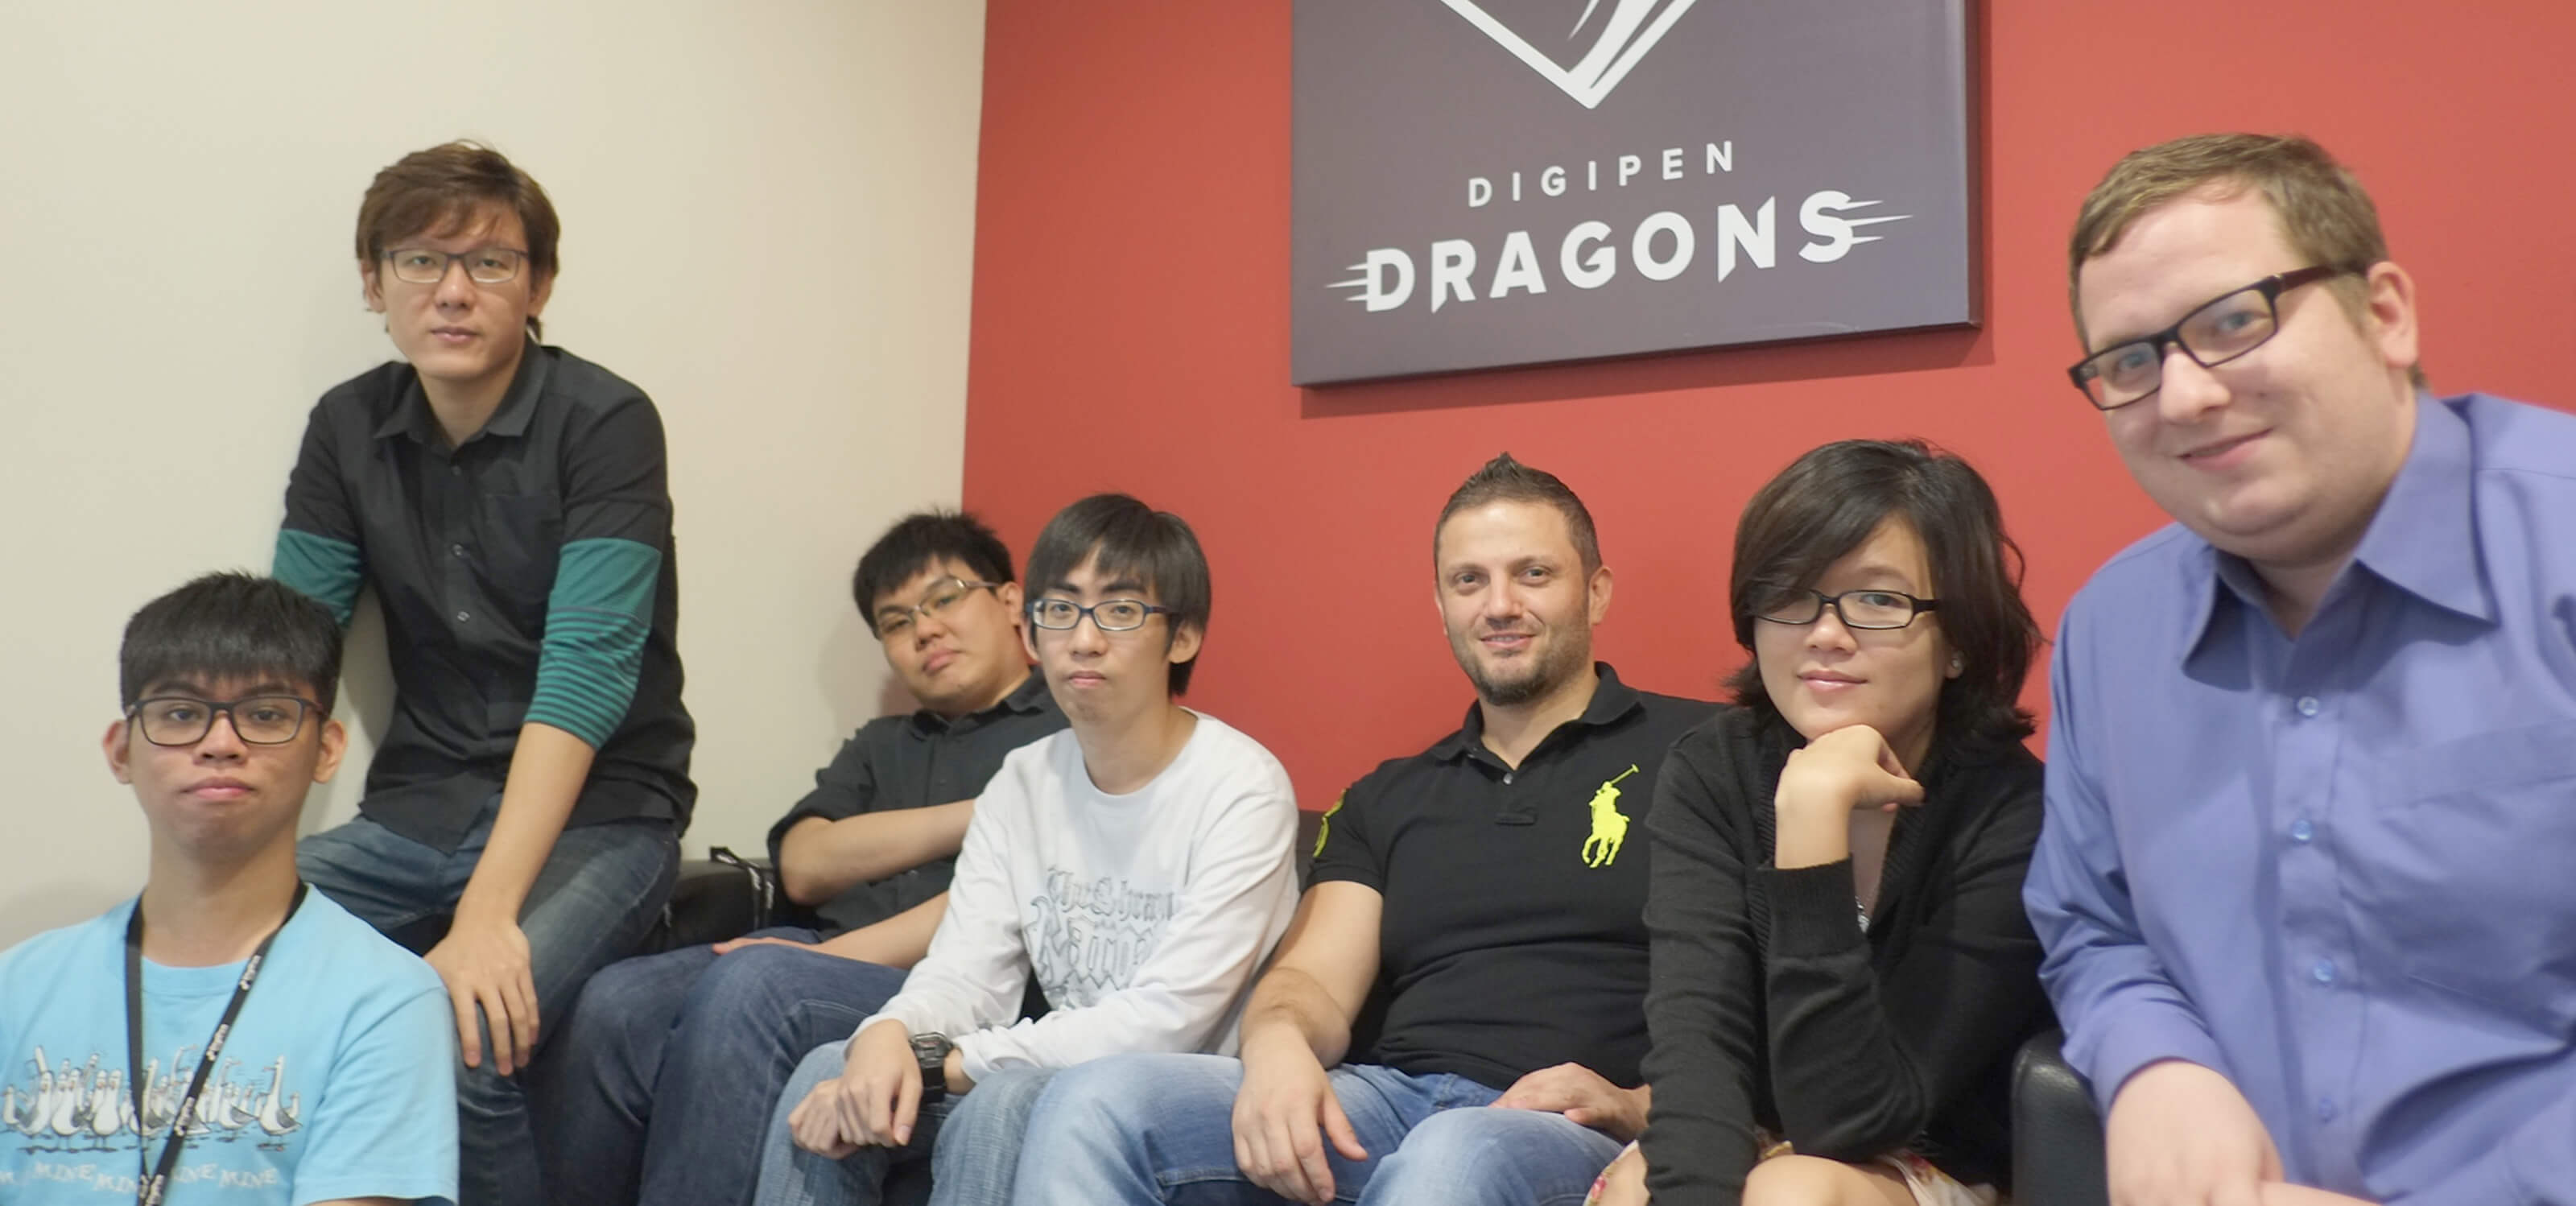 Members of the DigiPen (Singapore) Research and Development team sit at a couch below a poster of the DigiPen Dragons logo